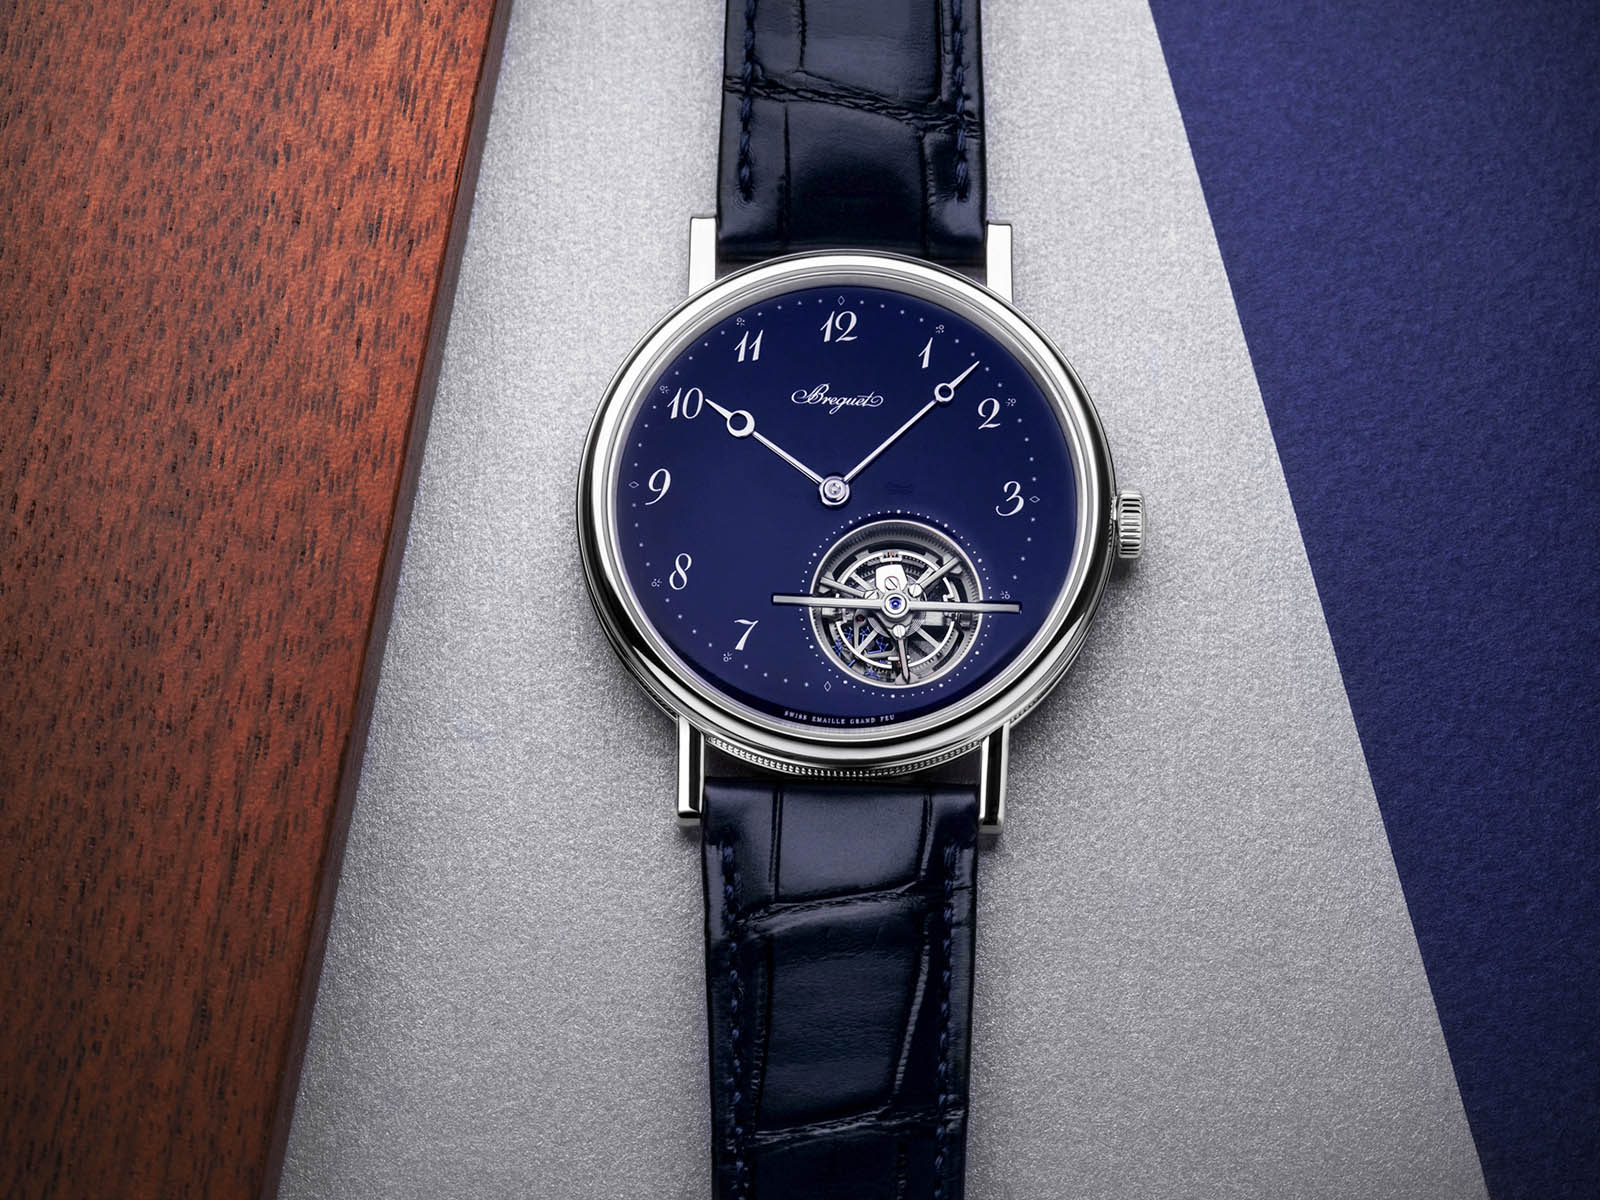 New Breguet watches 2020 Classique Tourbillon Extra-Plat 5367PT Blue Dial Platinum Enamel